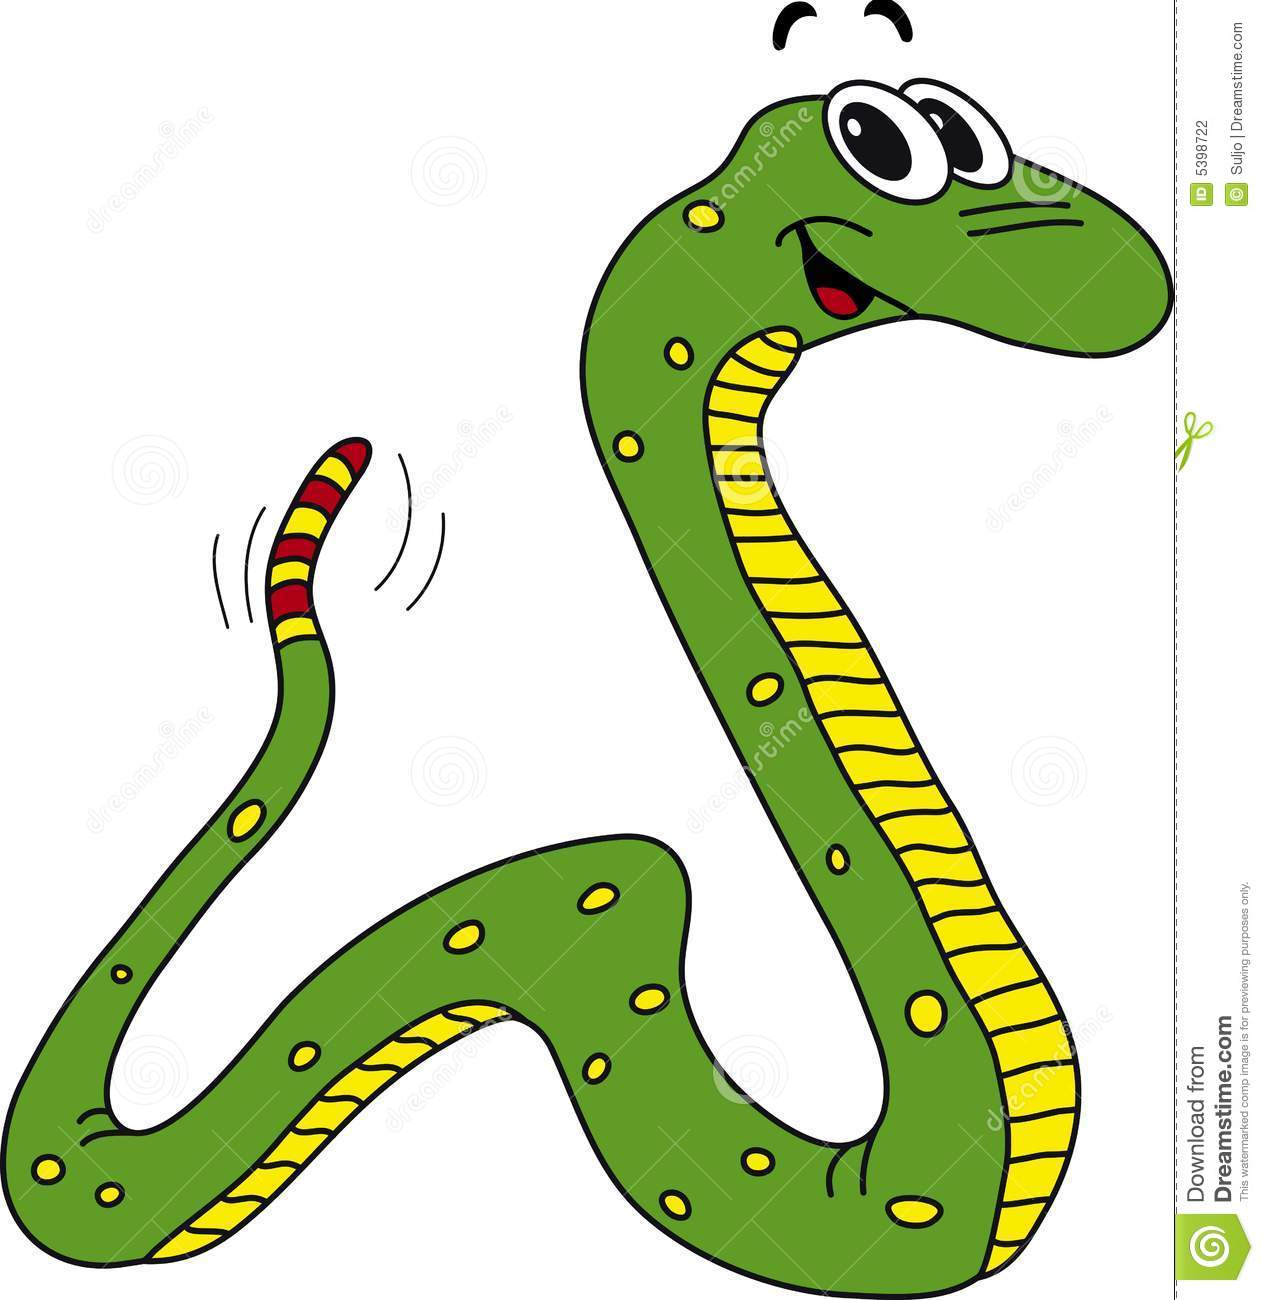 Smooth Green Snake clipart friendly Snakes Free Clipart Clip snake%20clipart